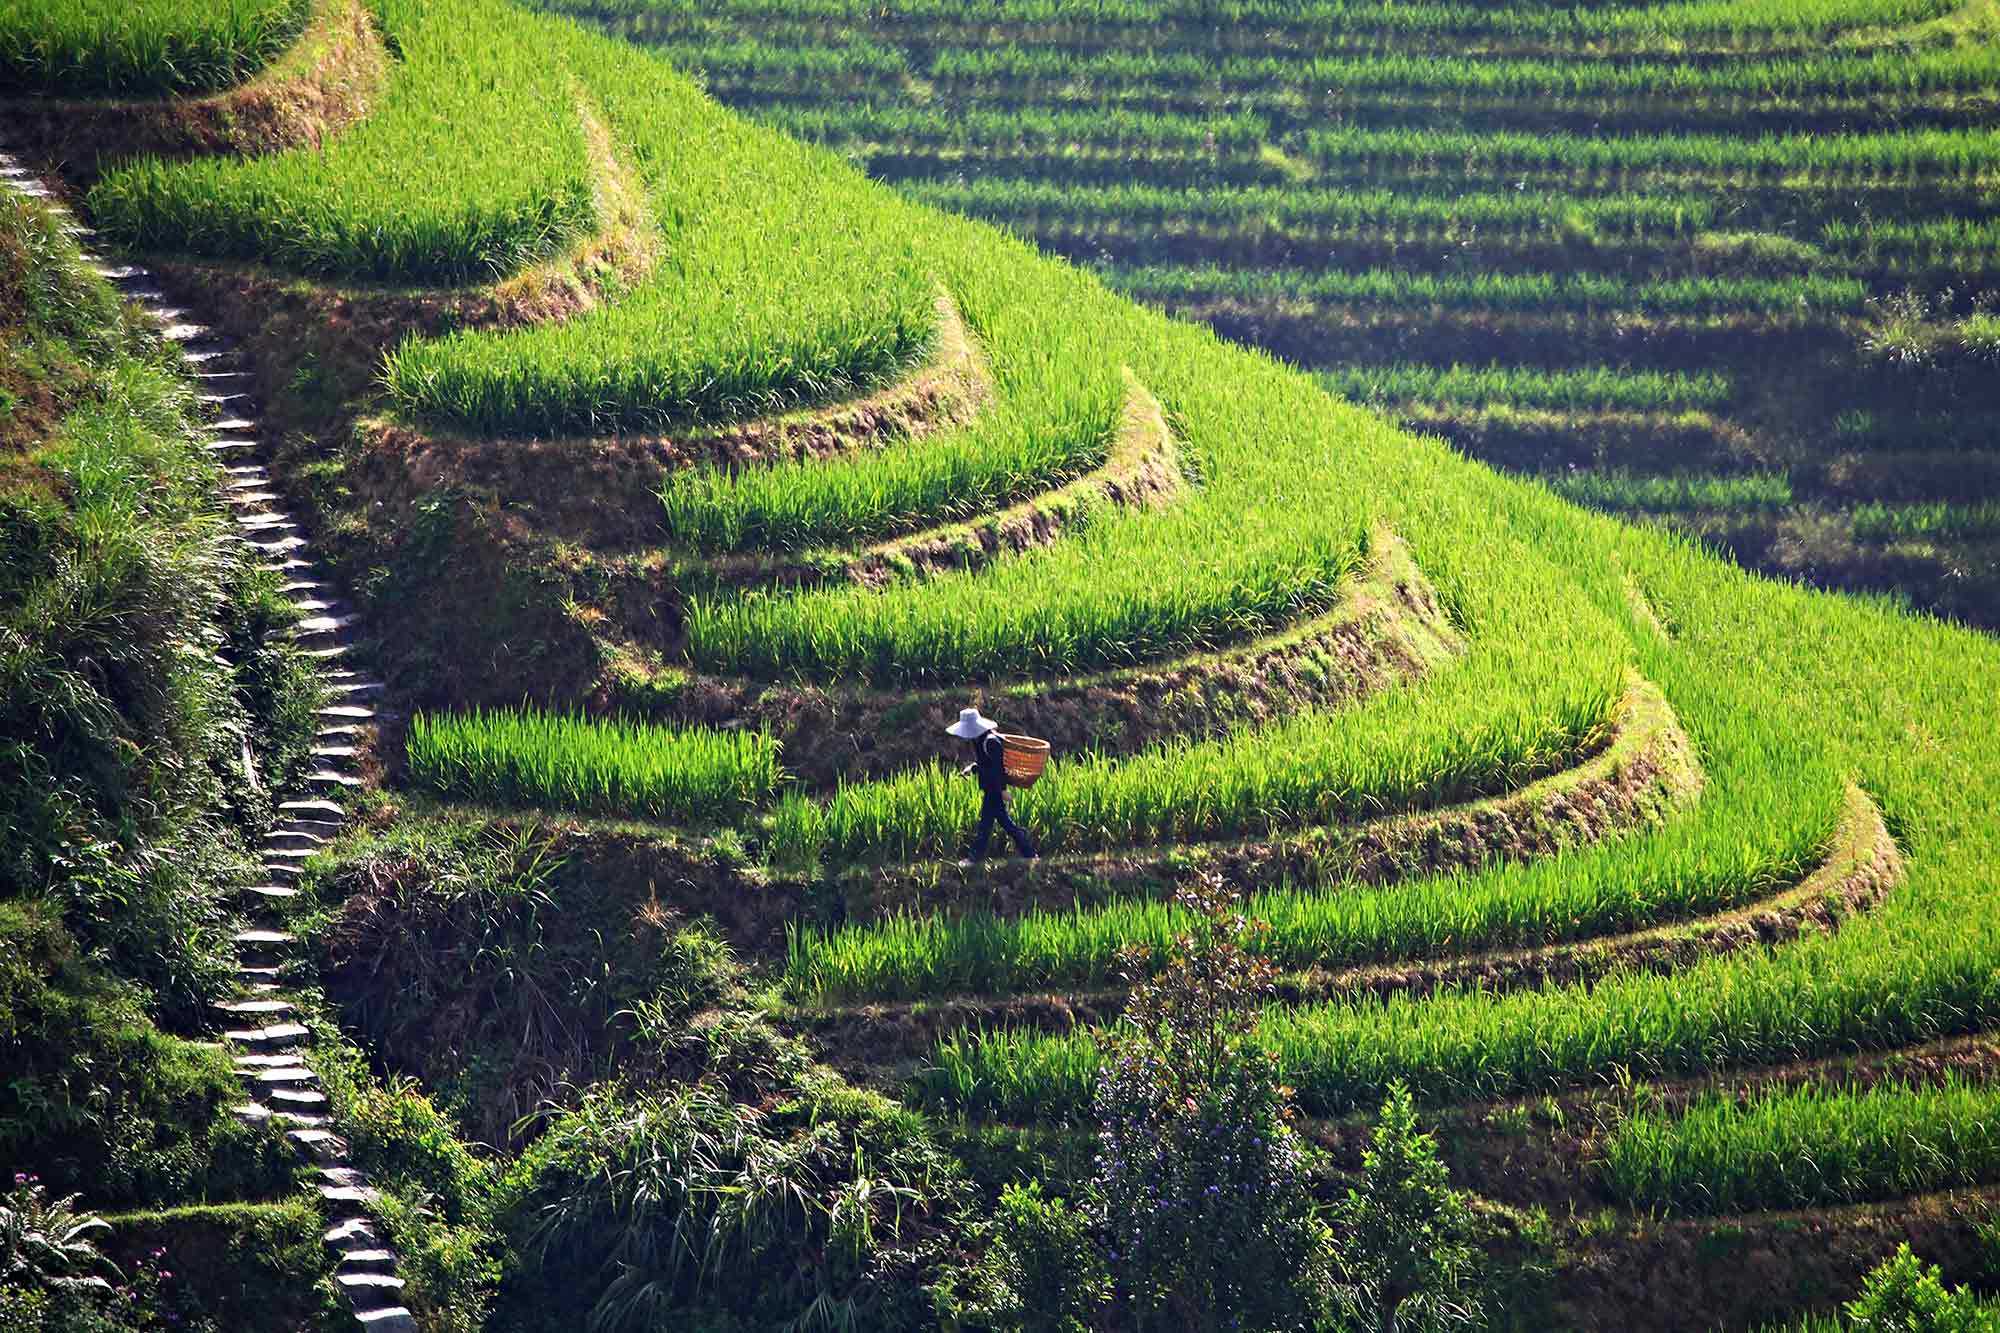 dazhai-wokring-at-longji-rice-terraces-china